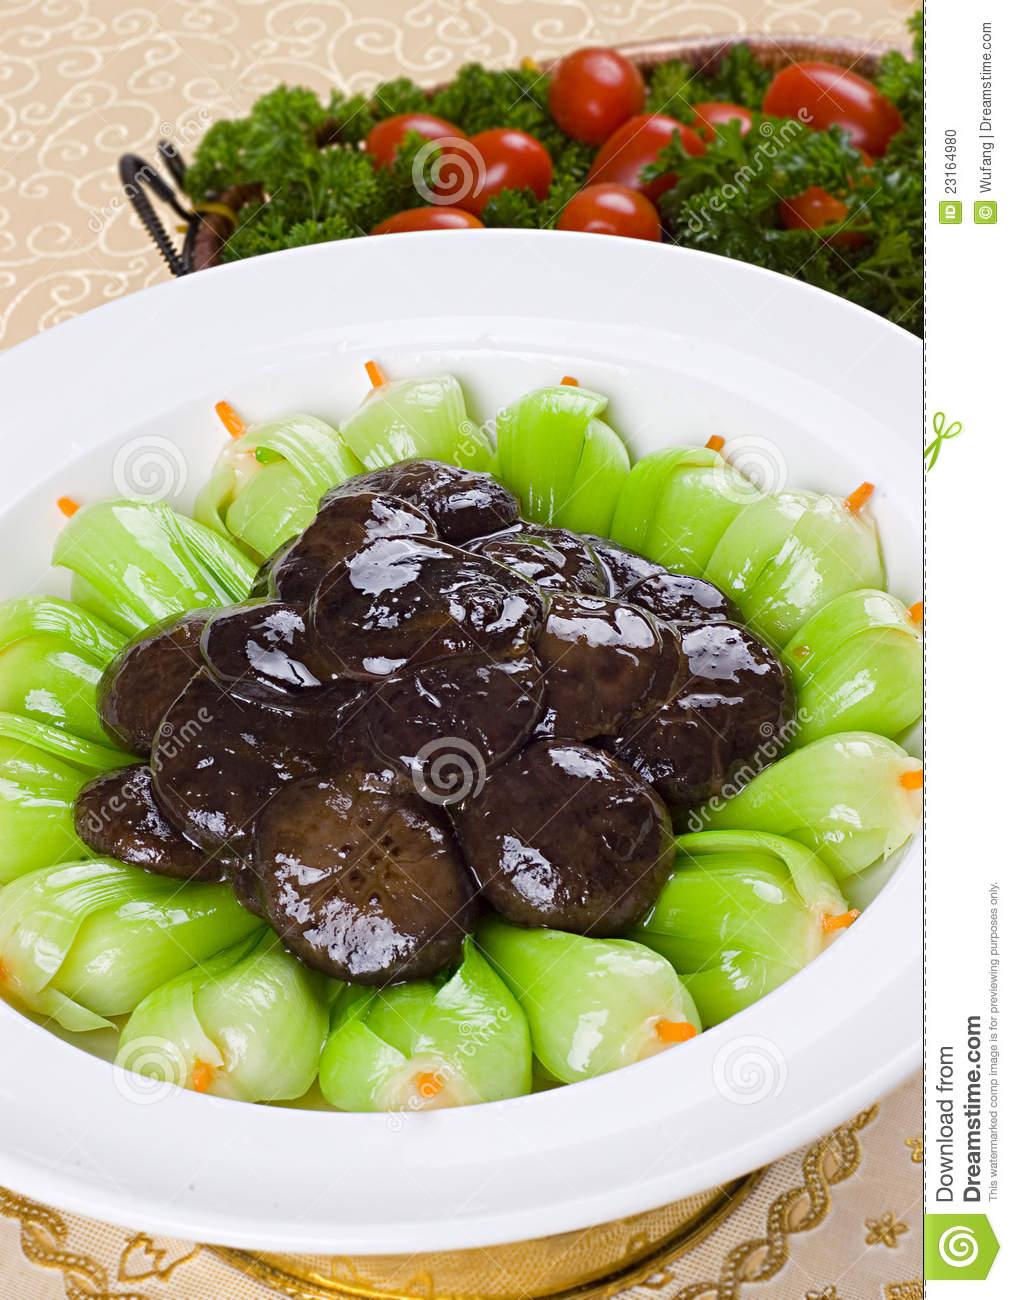 Fried Mushroom With Greens Stock Photo - Image: 23164980